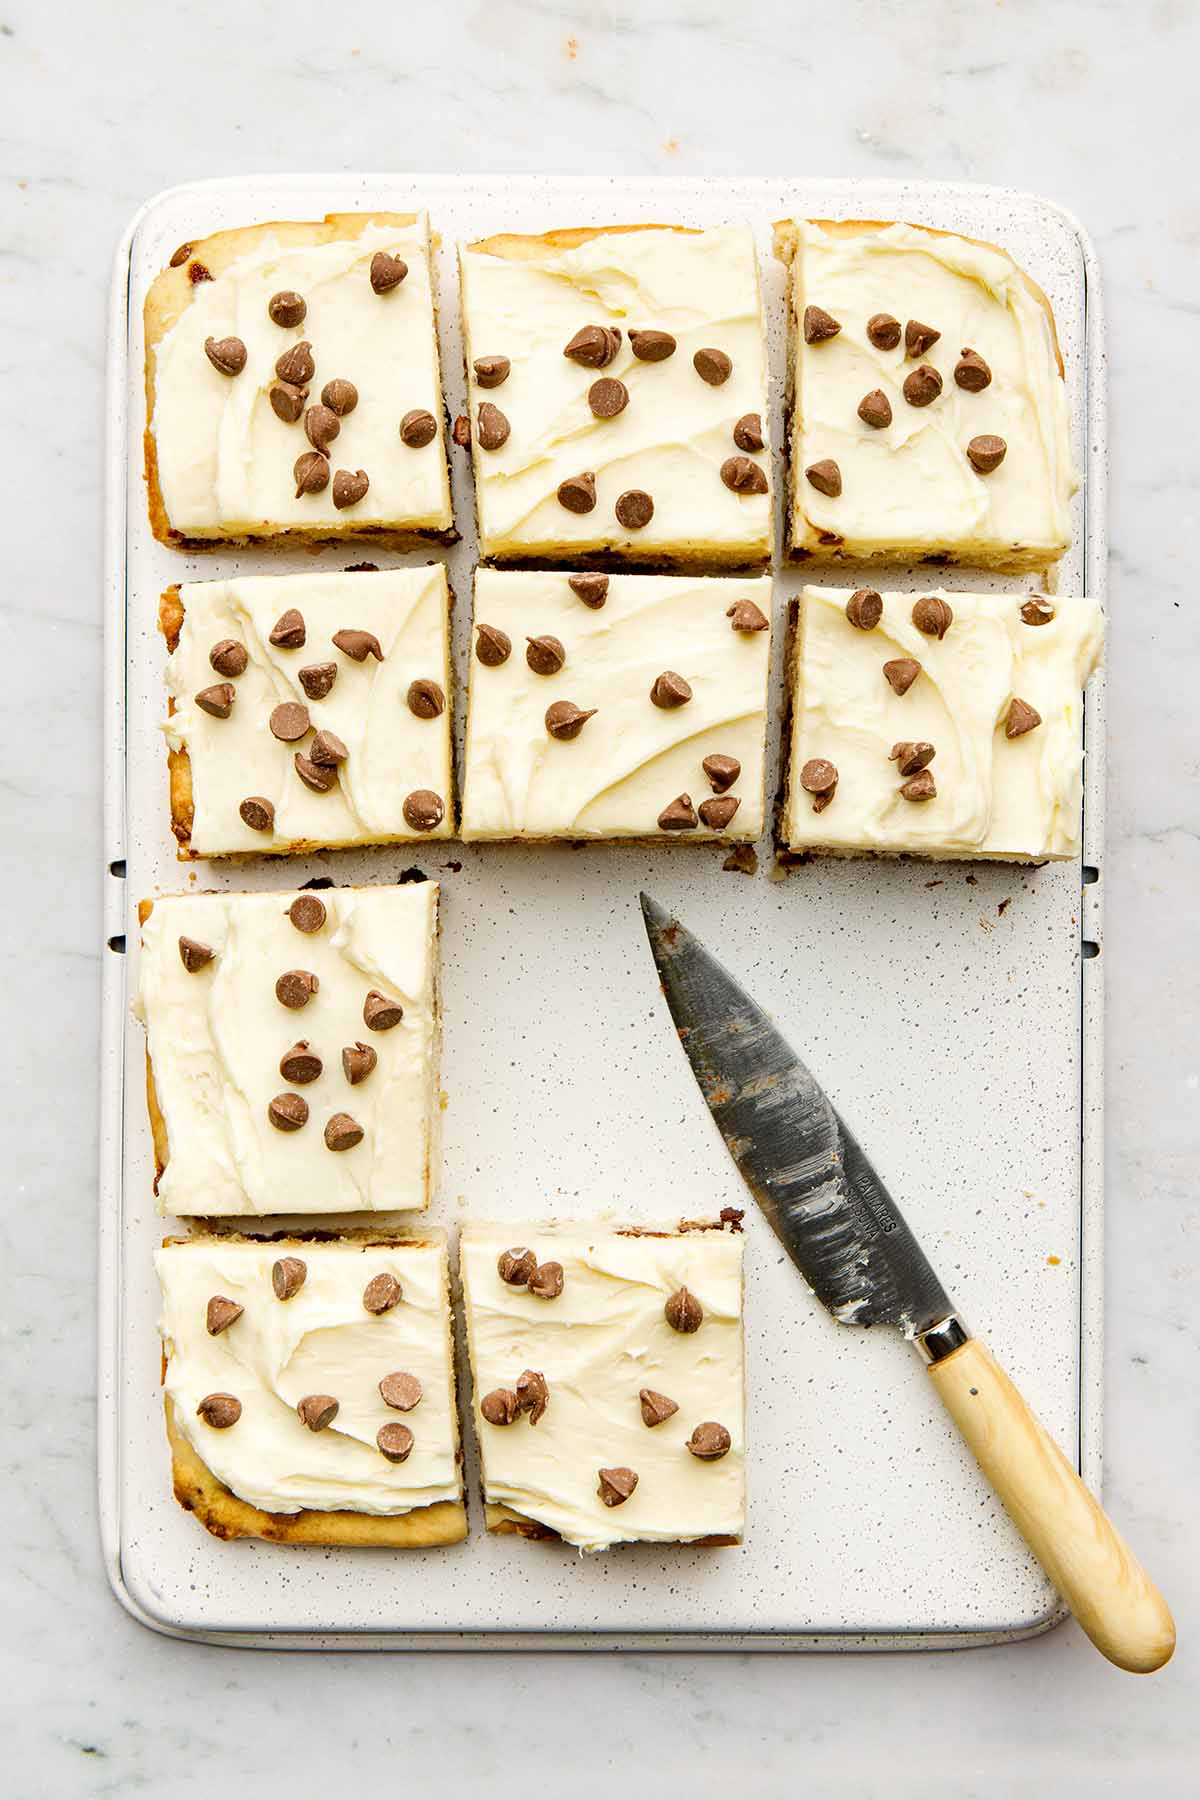 A chocolate chip sheet cake cut into squares on an upsie down baking tray with a knife nearby.